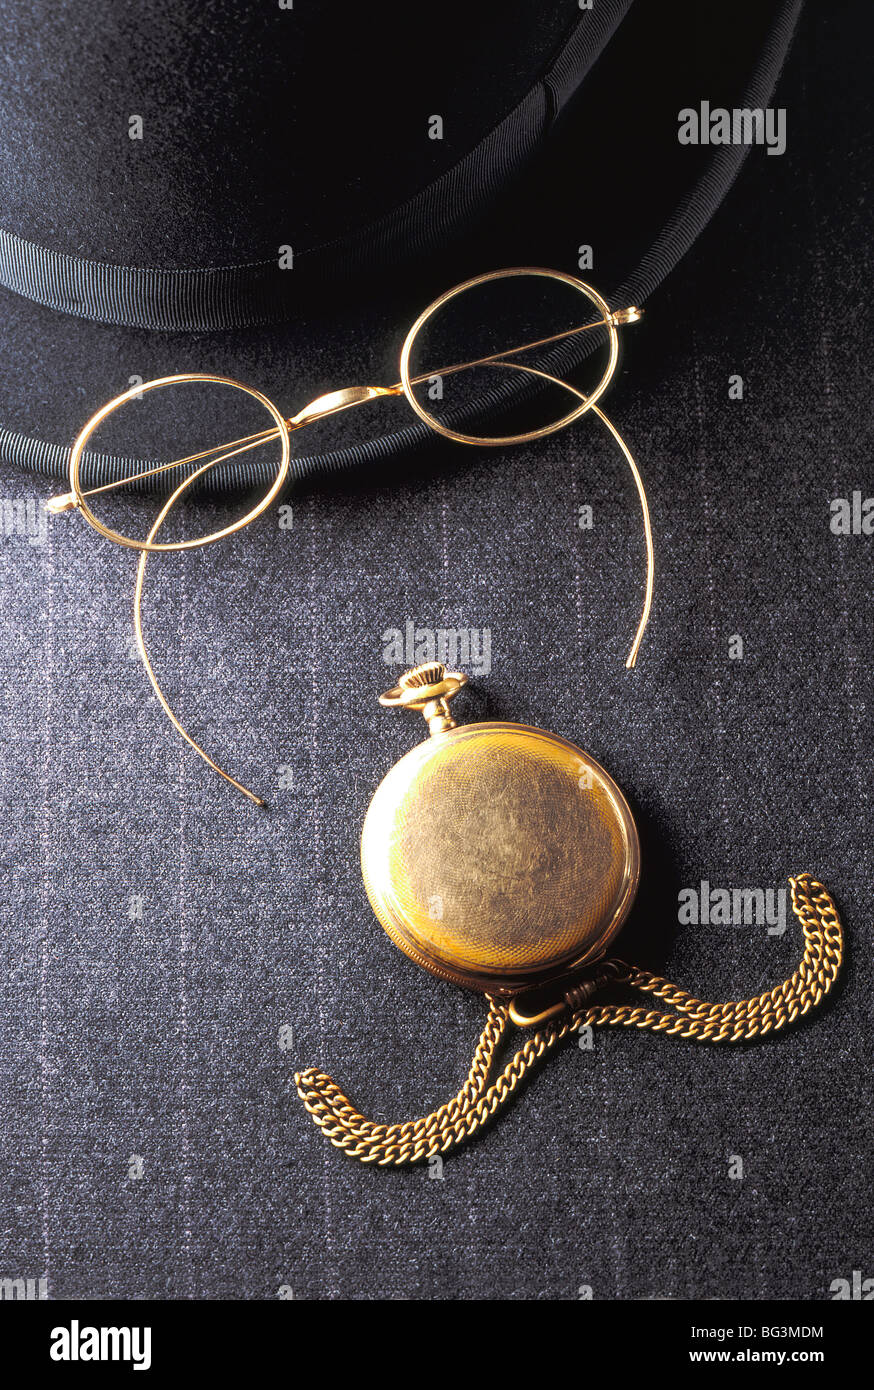 Humorous English face, conceptual still life with bowler hat, reading glasses, pocket watch, chain, on pinstripe - Stock Image